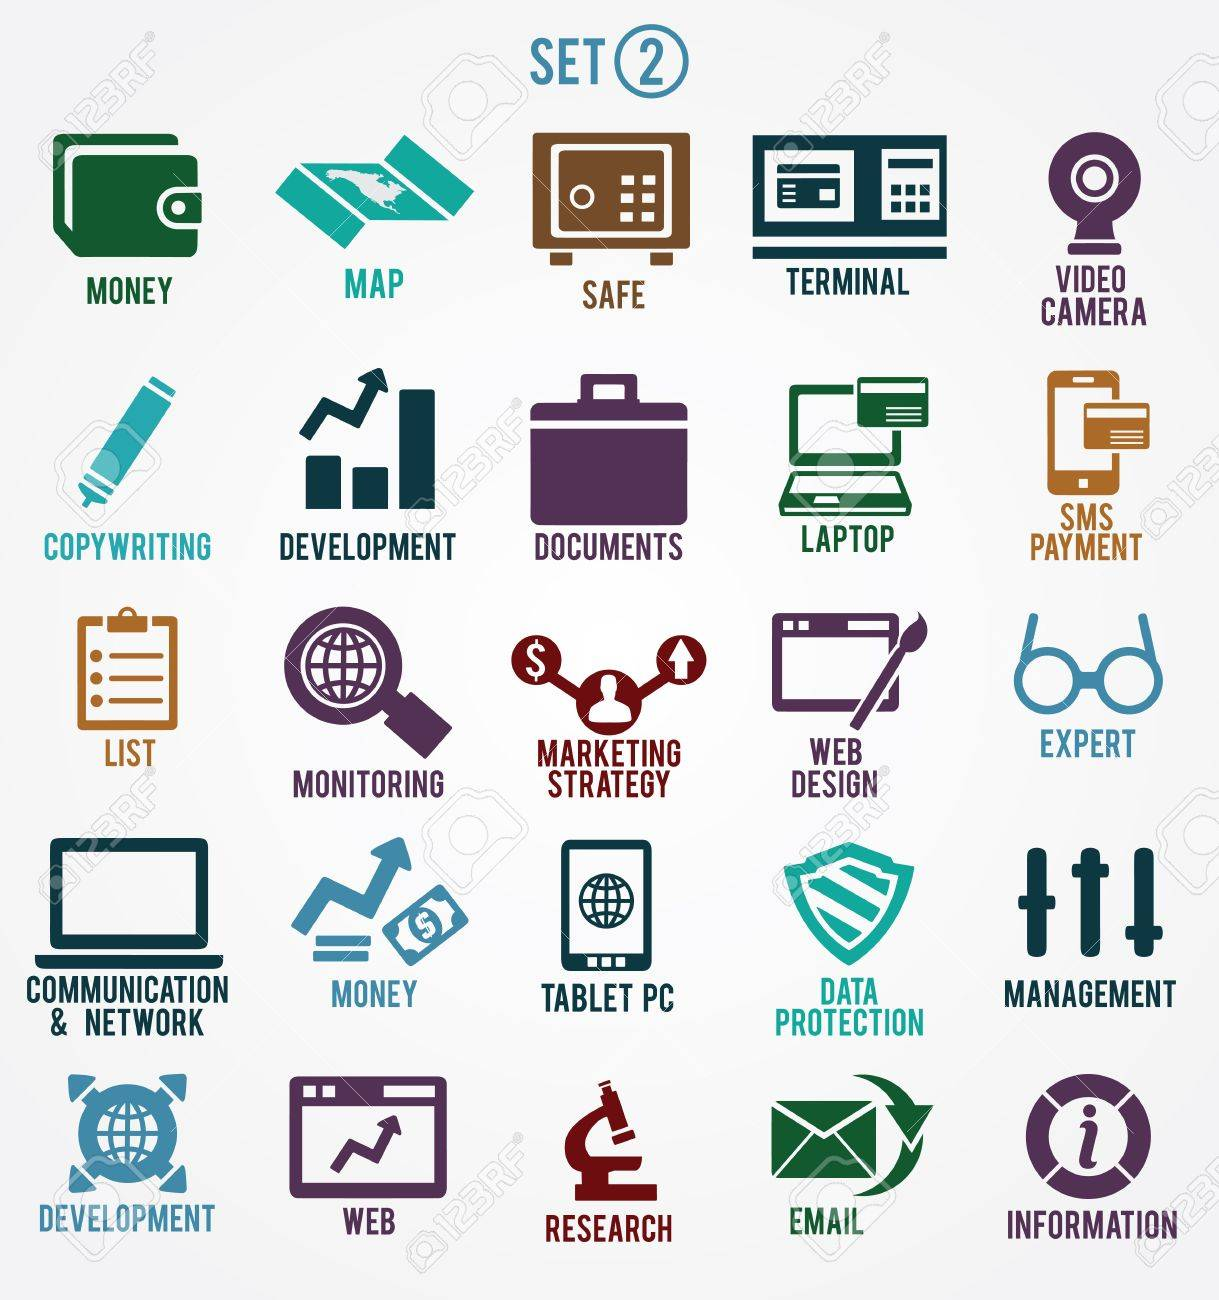 Set of internet services icons - part 2 - vector symbols Stock Vector - 19085126